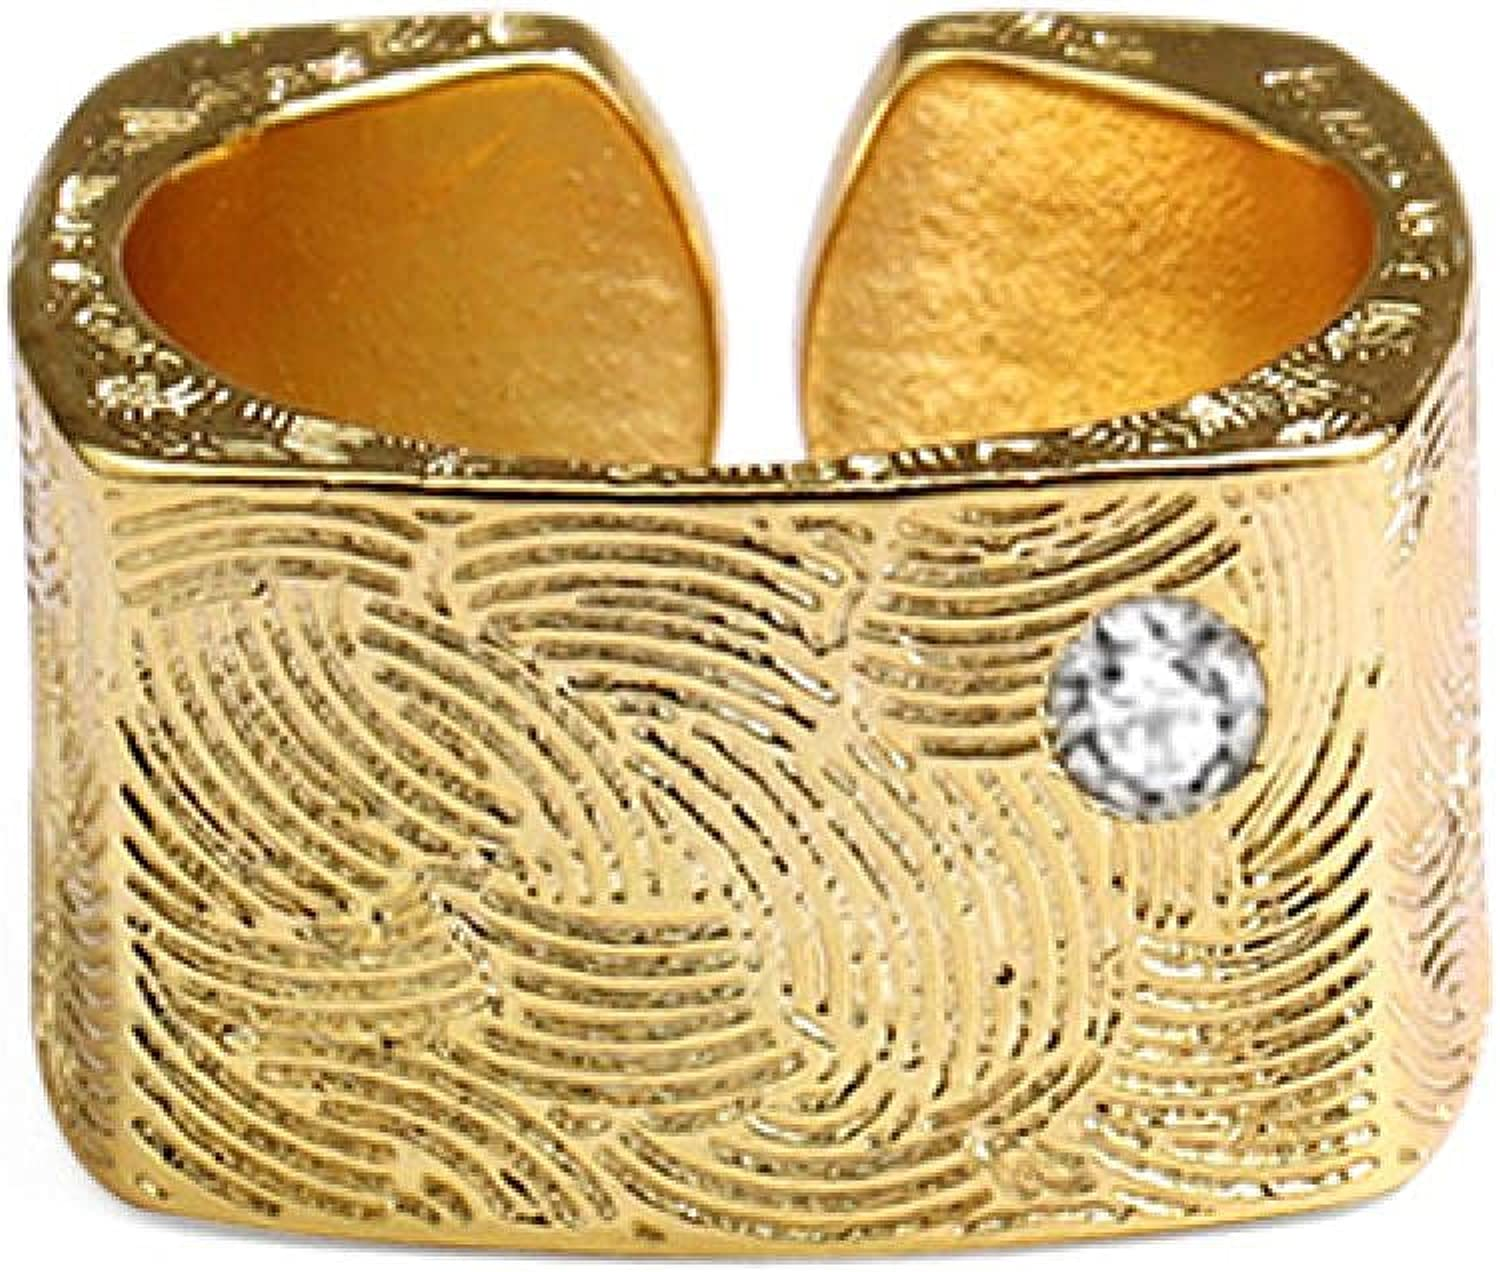 Rings For Oklahoma City Mall Women Men Irregular Geometric Square Ring Gold Open Pa Max 77% OFF